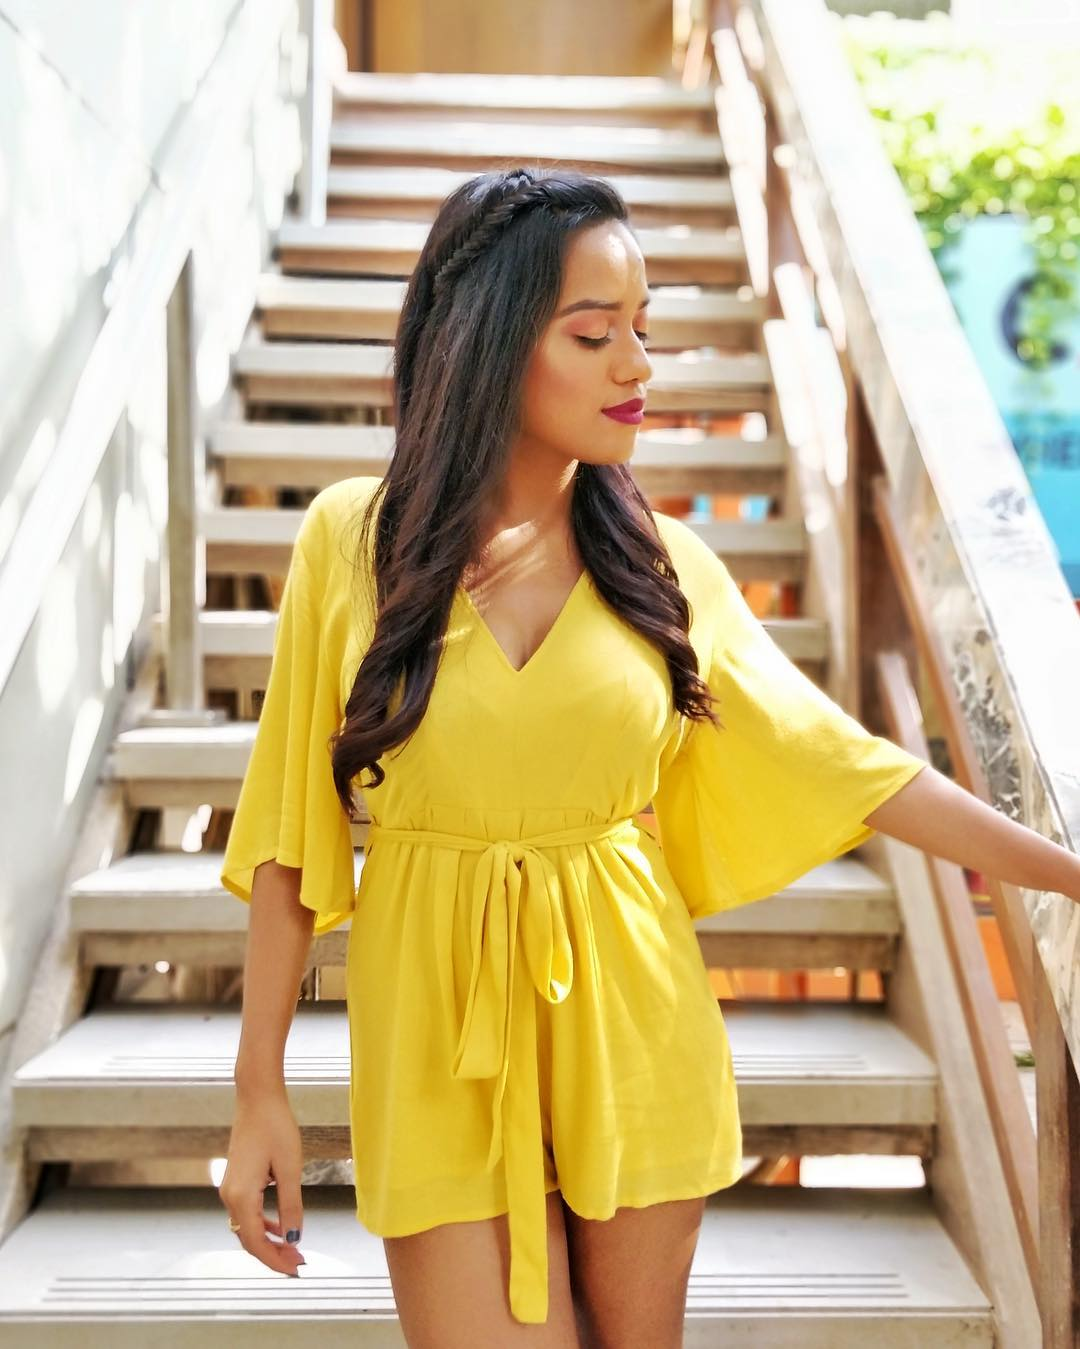 makeup for bright outfits  makeup  lipsticks  yellow dress  best  Matching your makeup  clothes 4